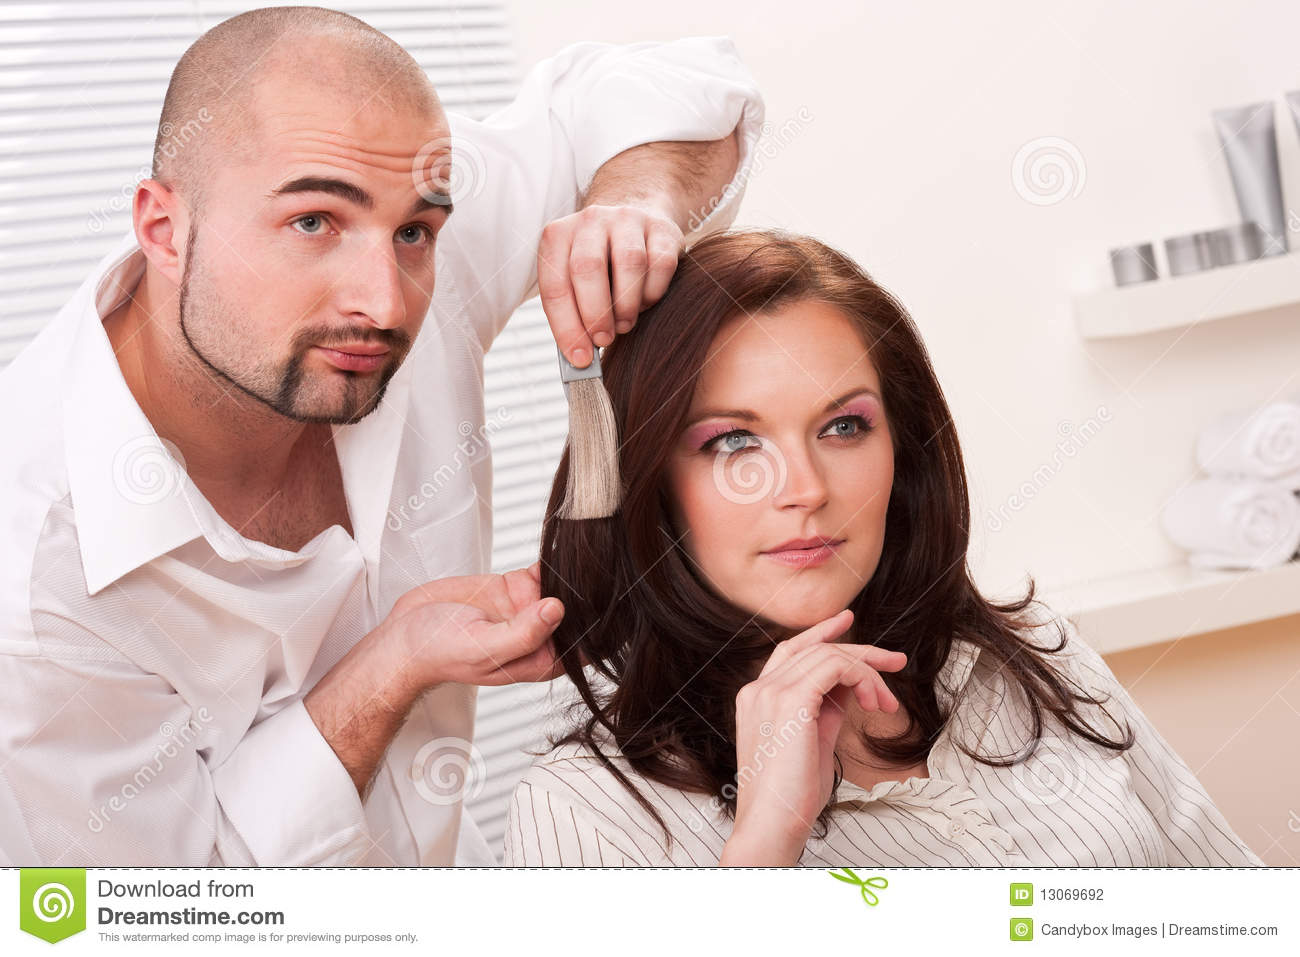 Professional Hairdresser : Professional Hairdresser Choose Hair Dye Color Stock Photography ...